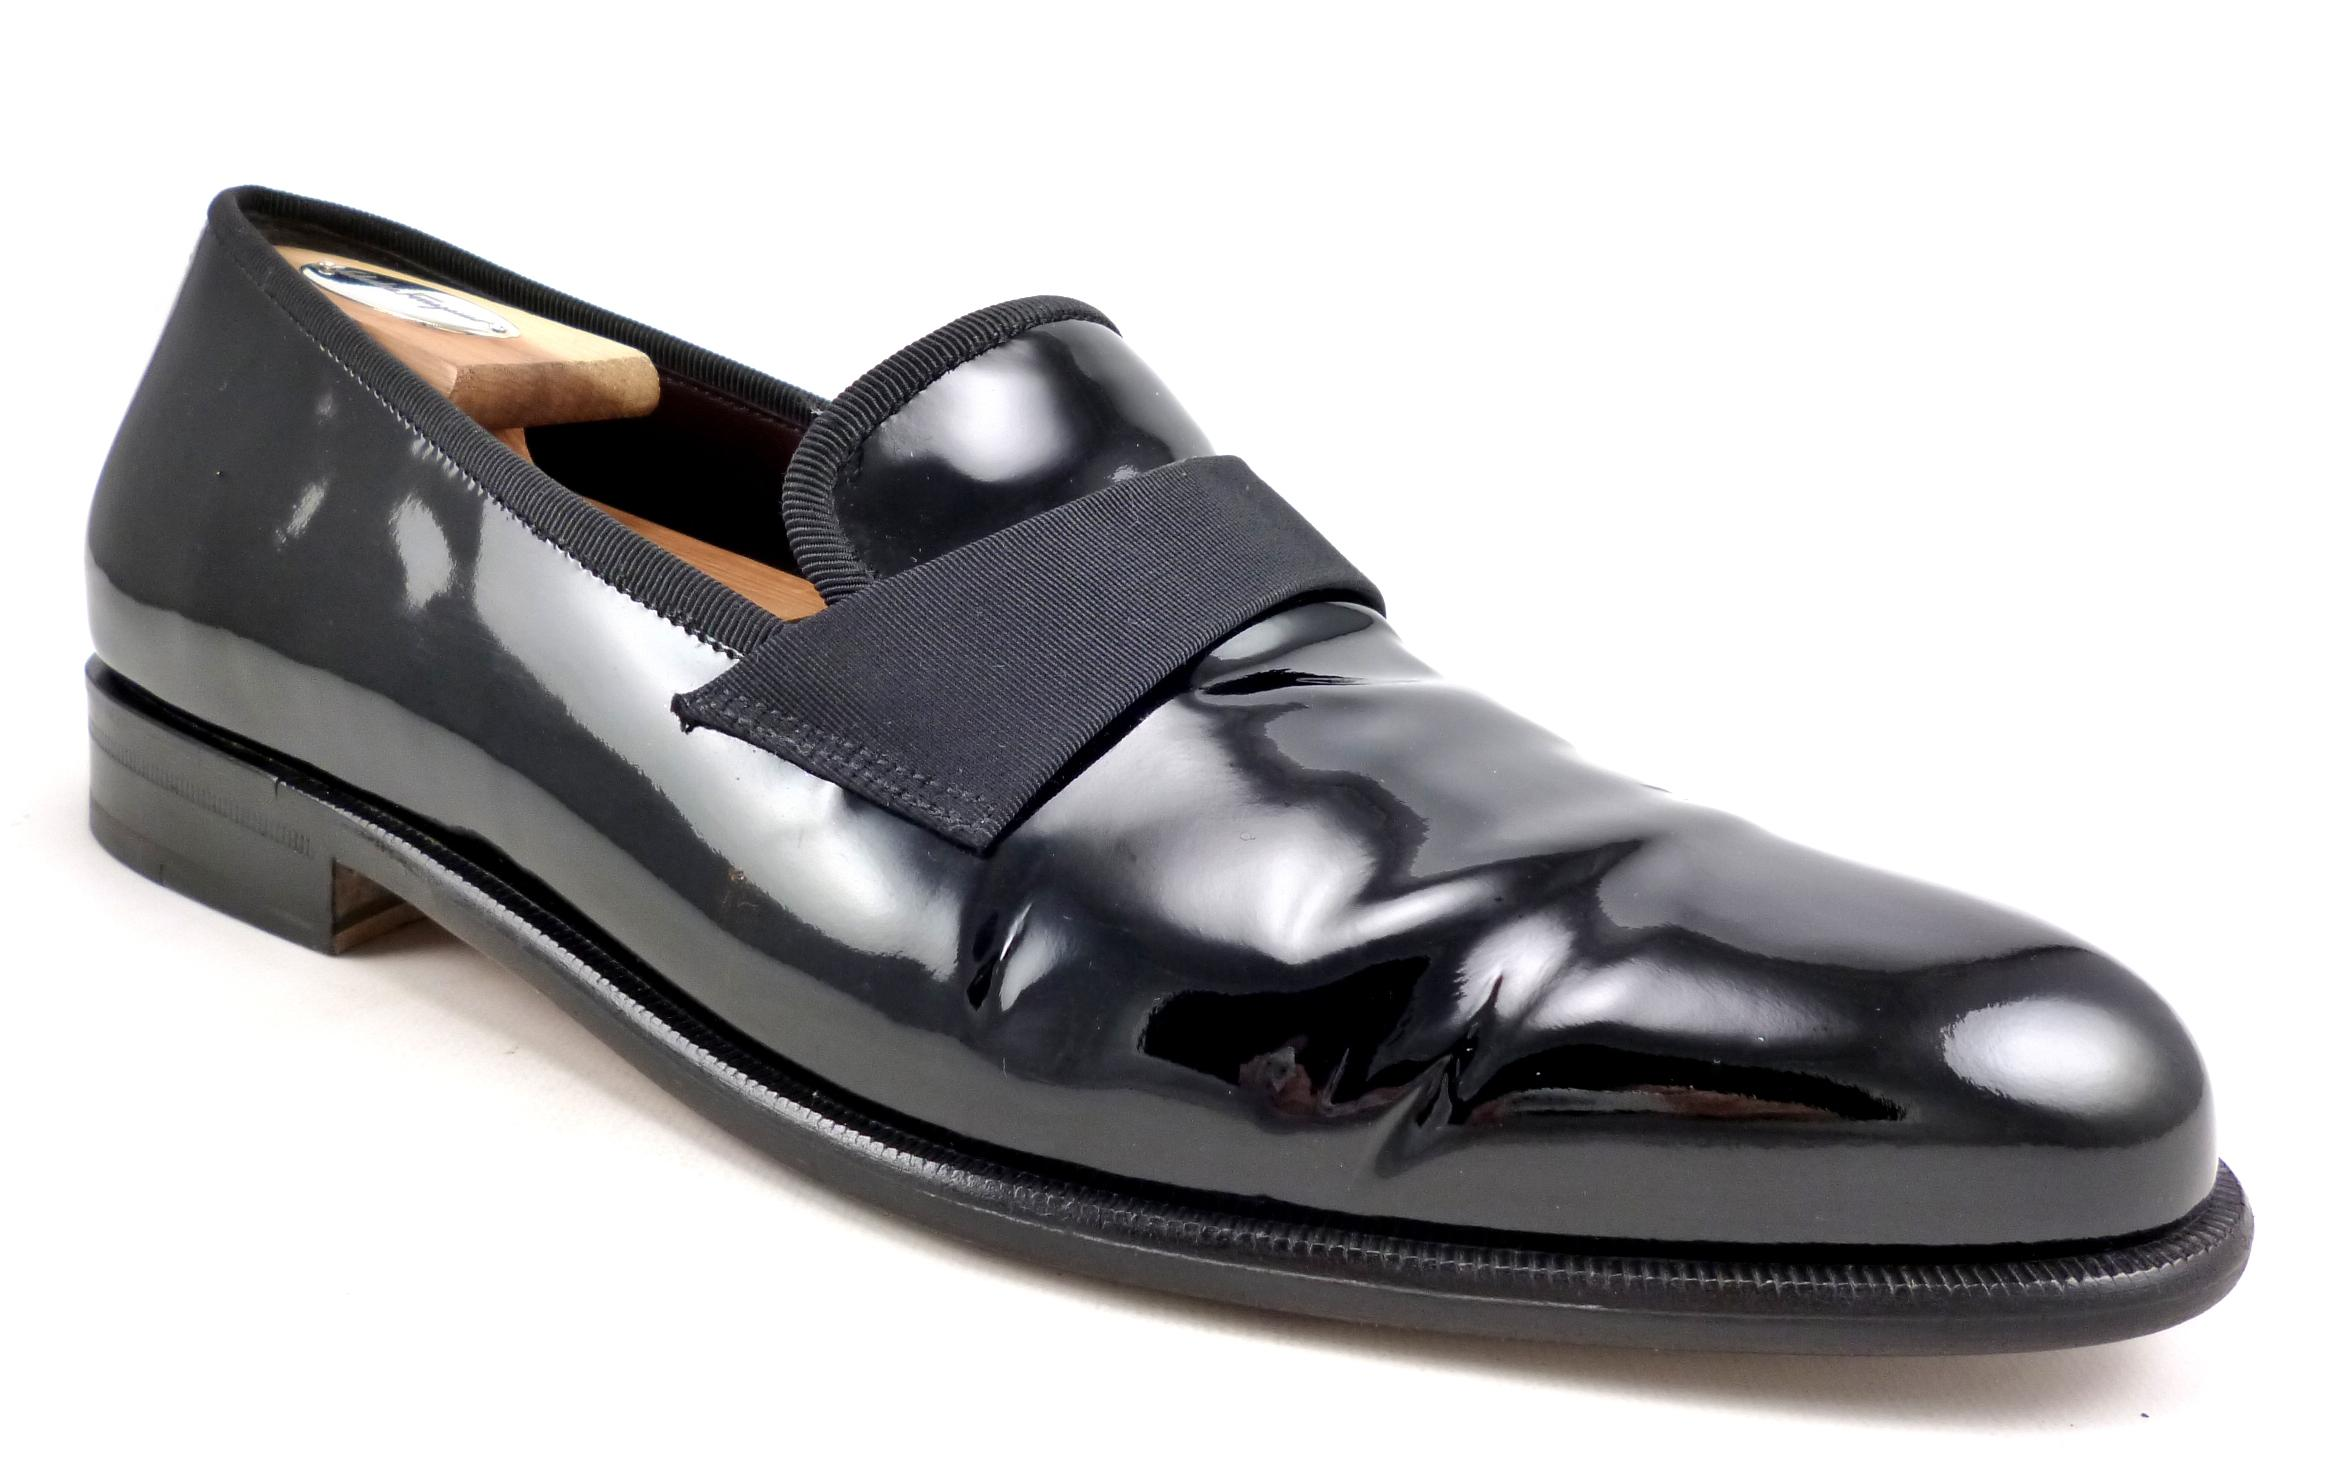 sale best store to get Salvatore Ferragamo Patent Leather Loafer Mules clearance footlocker pictures official online Zdyo7